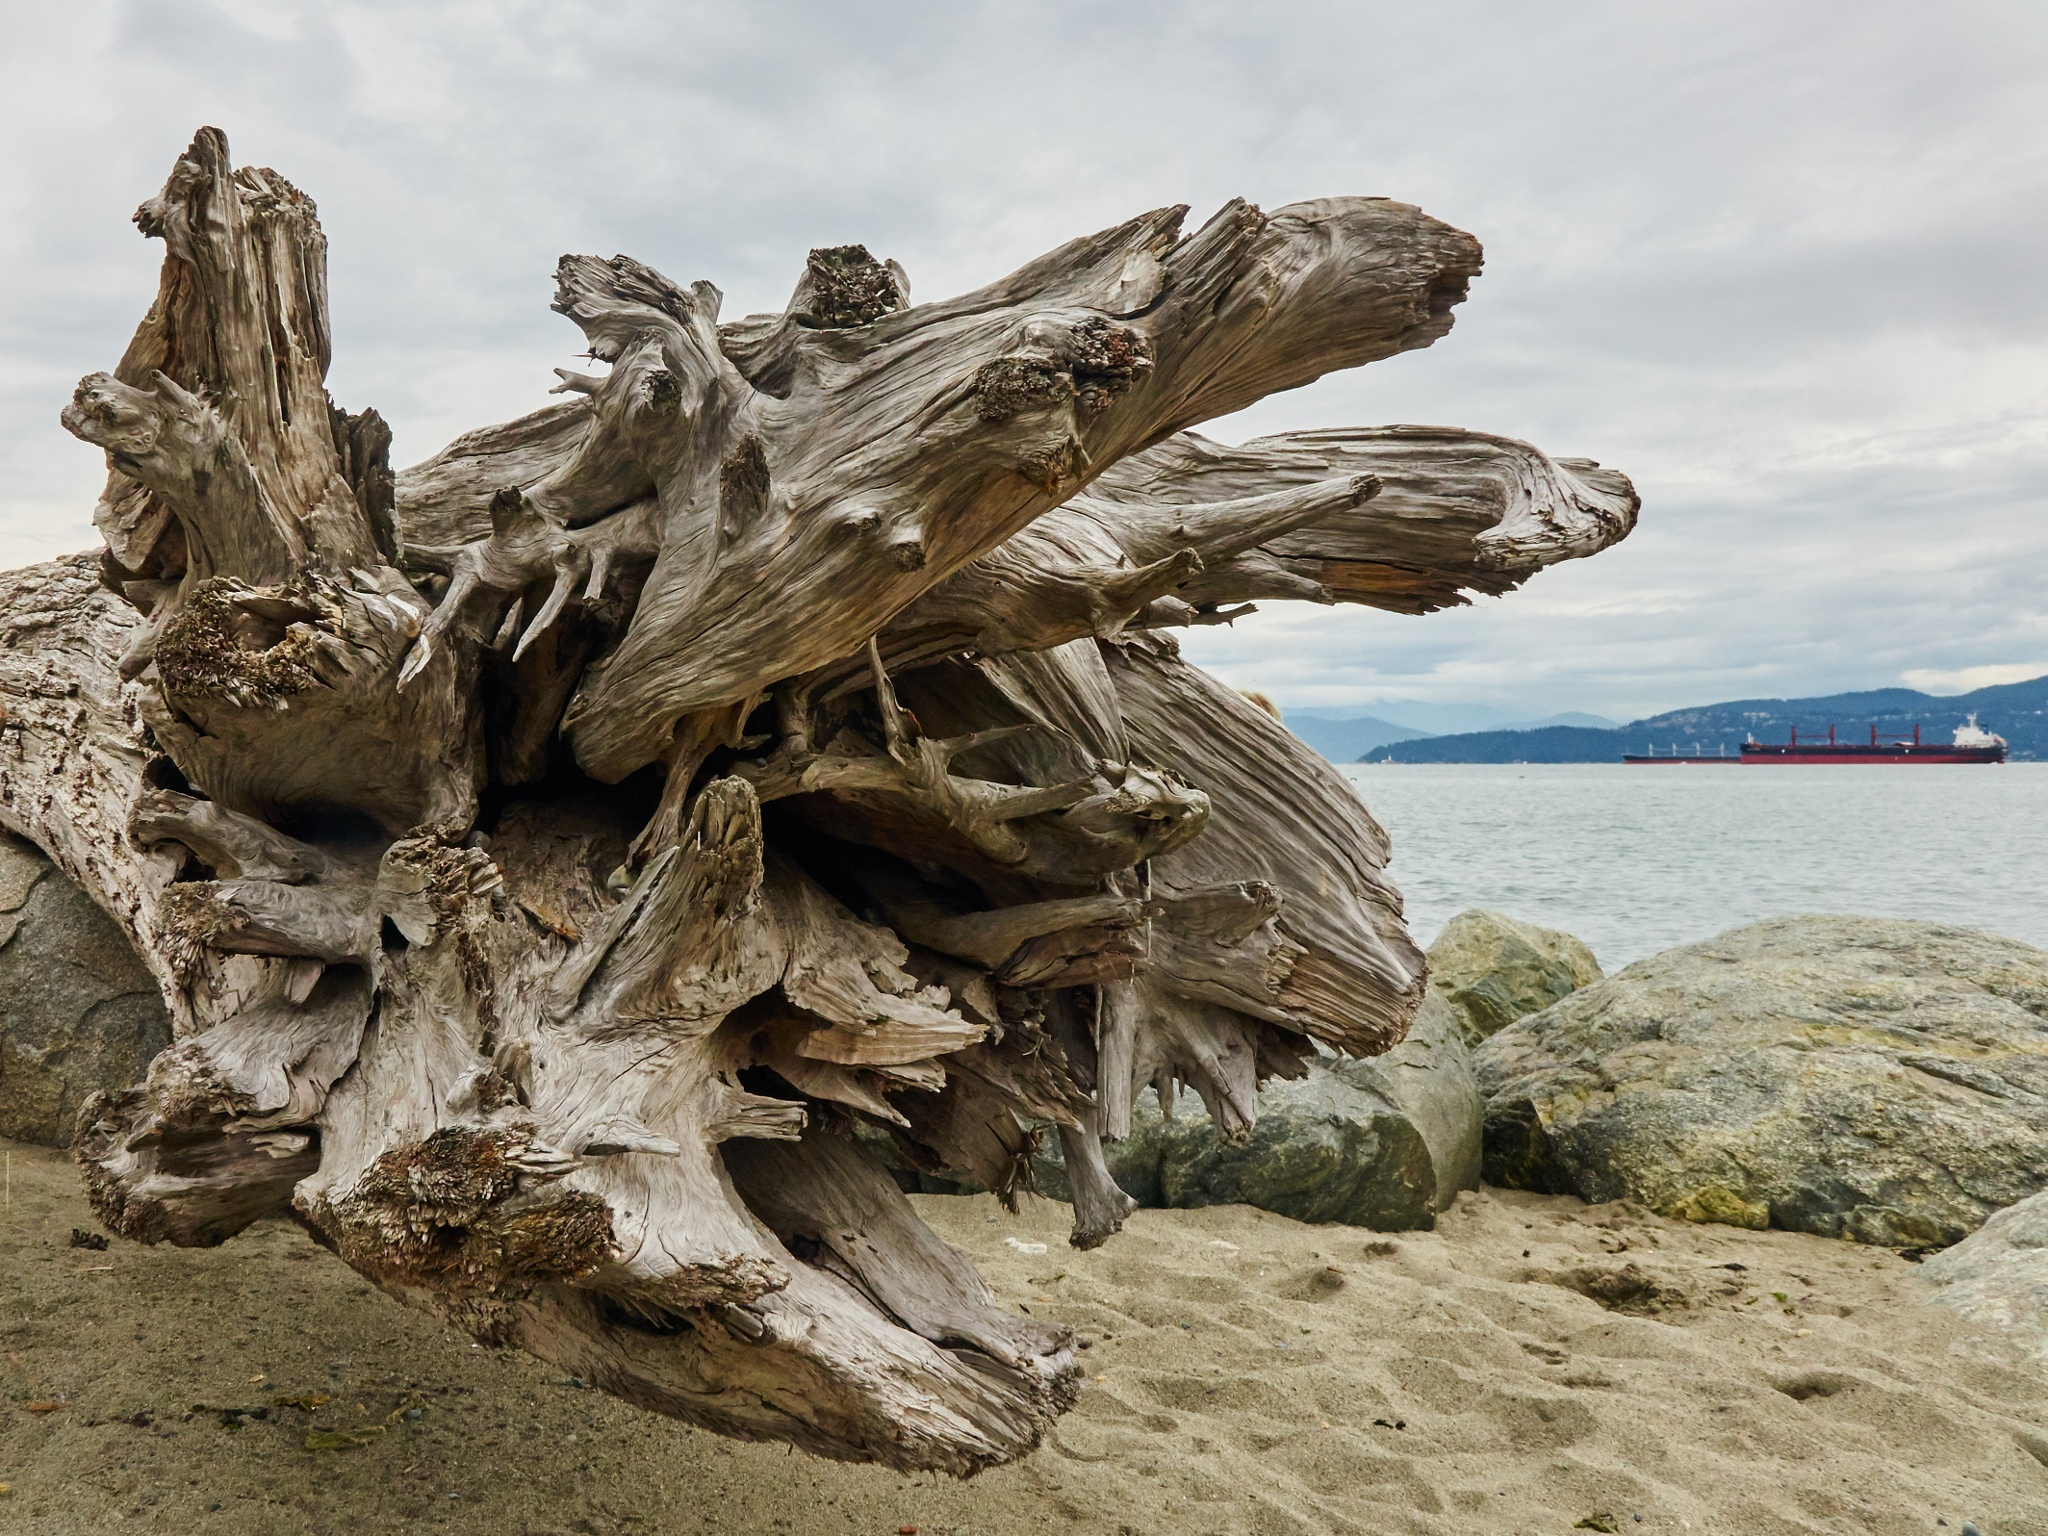 Driftwood, Spanish Banks, Vancouver by awish2c